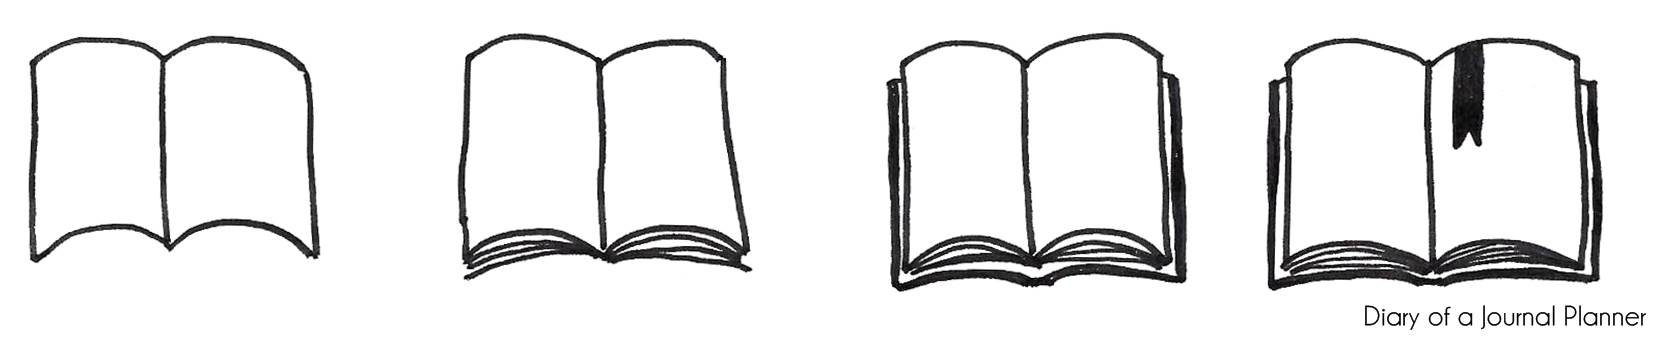 how to draw a book open